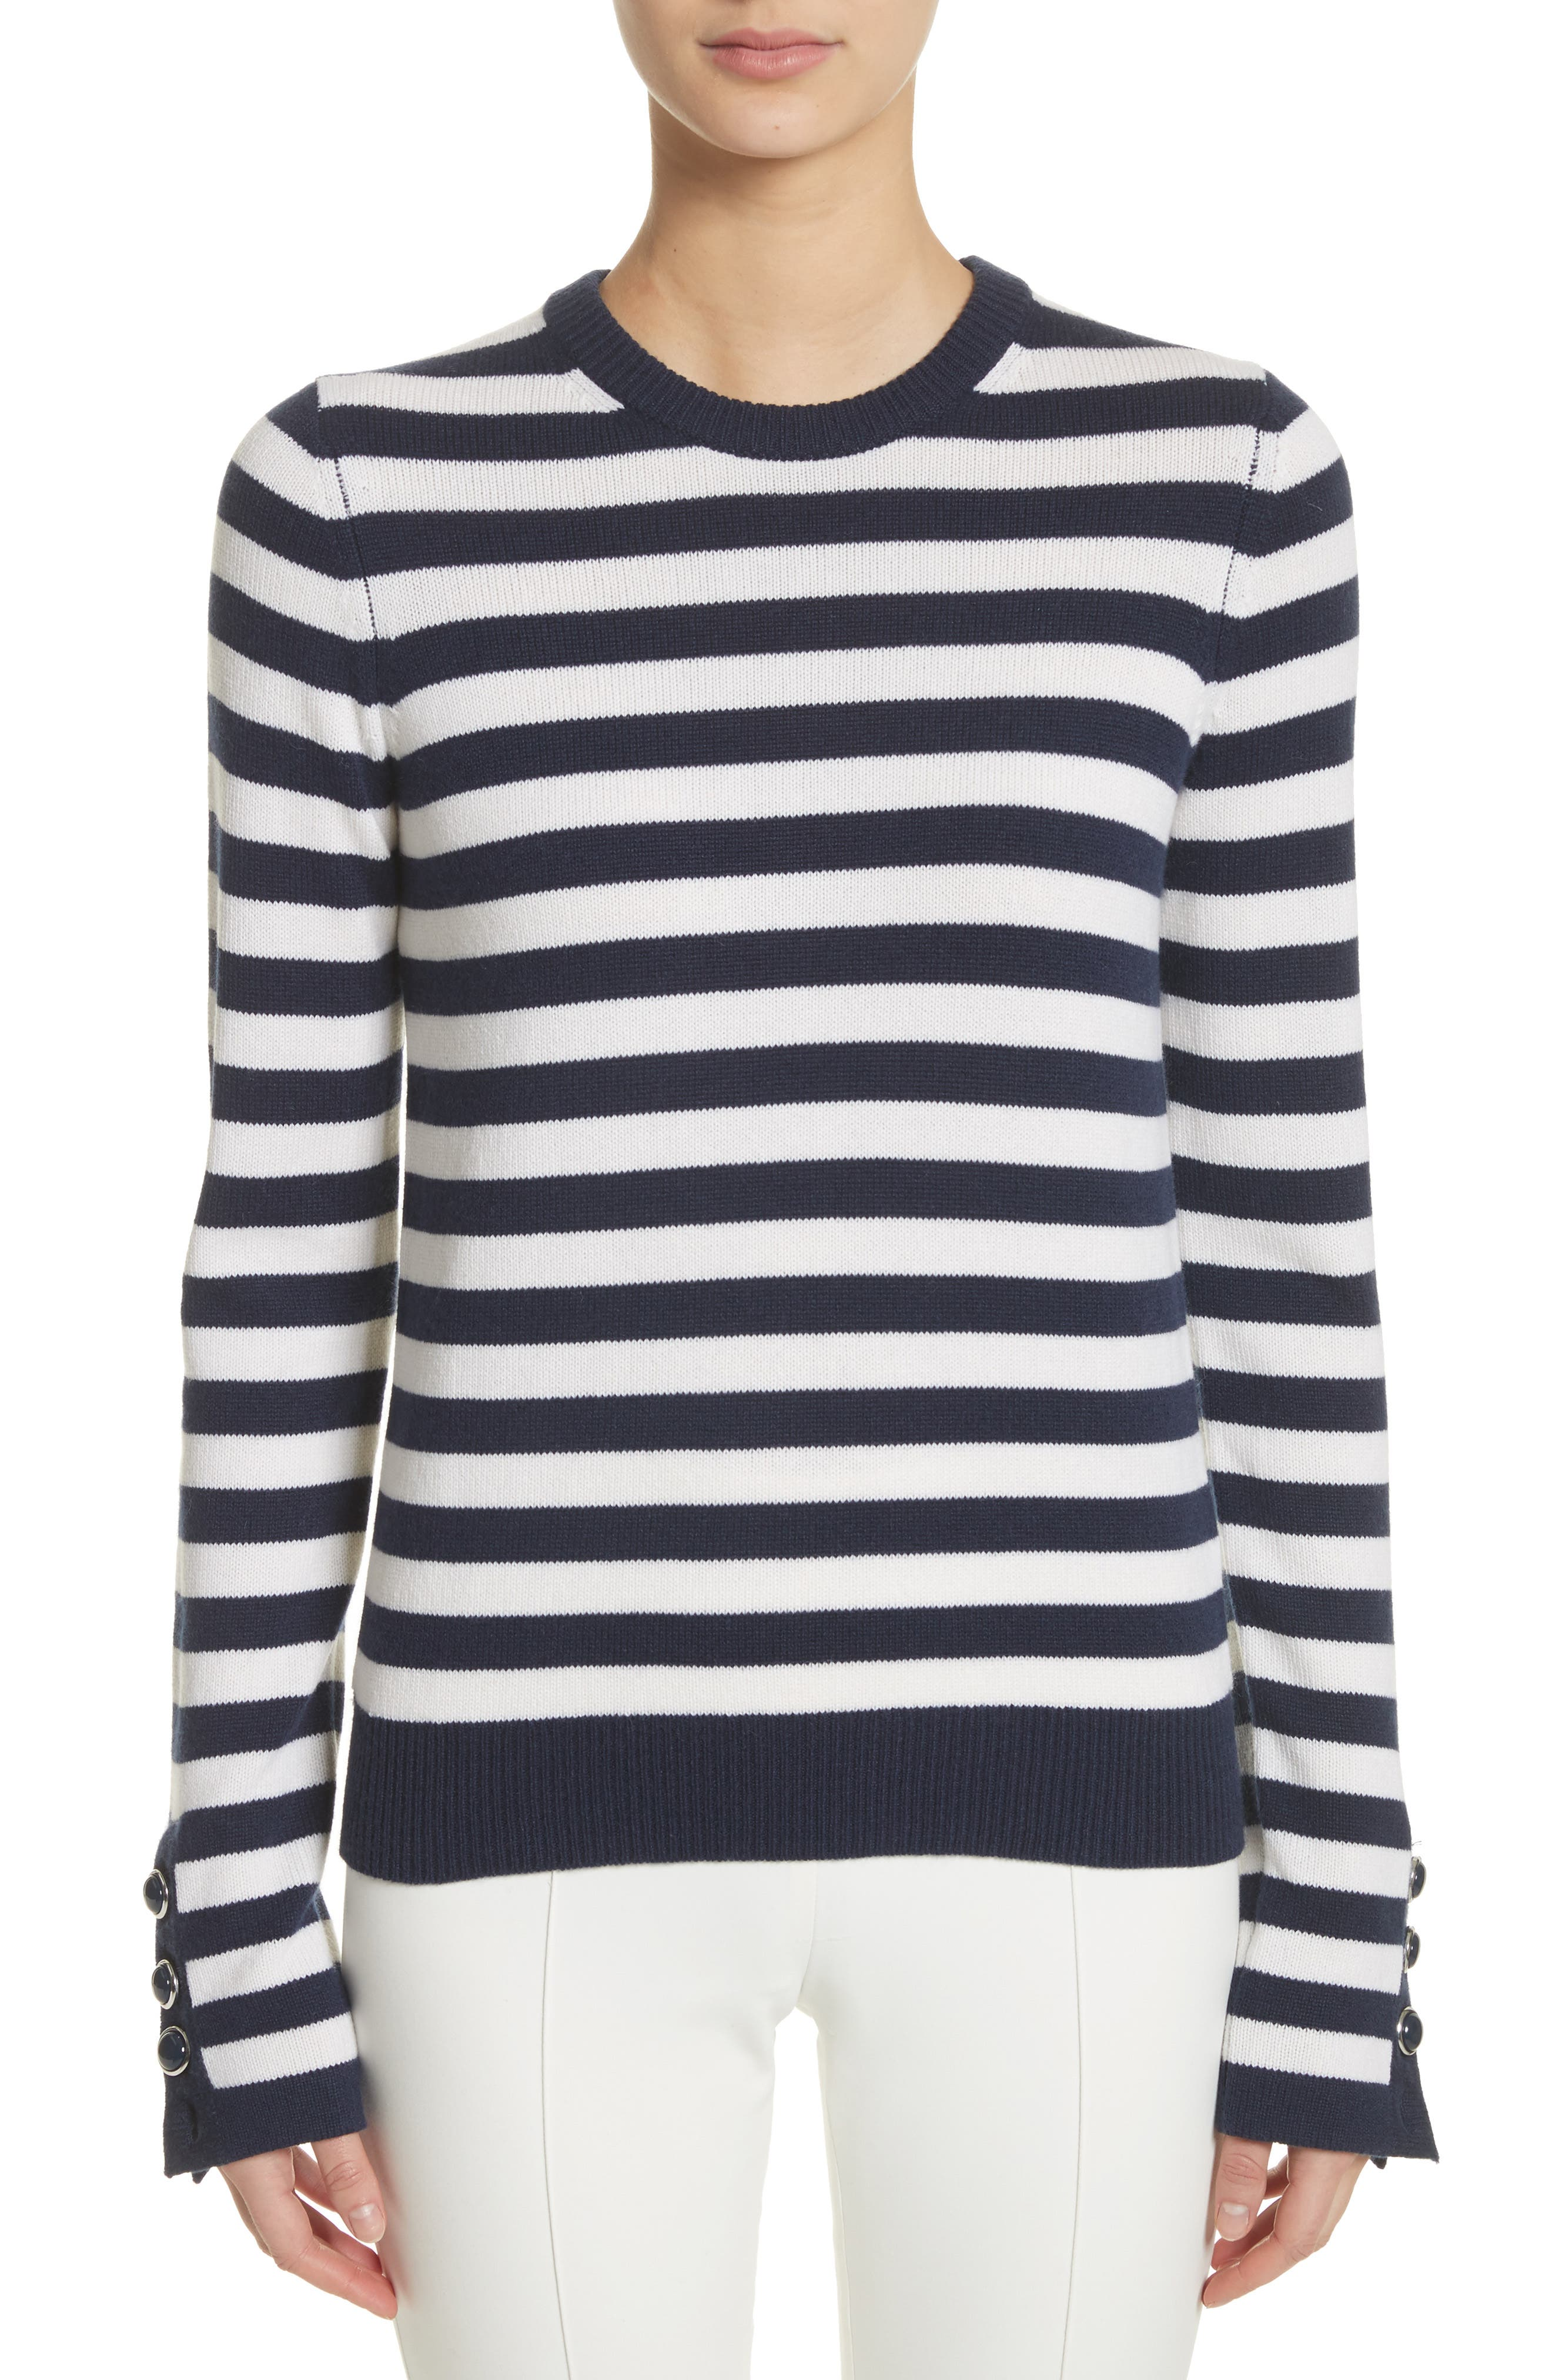 Alternate Image 1 Selected - Michael Kors Button Cuff Cashmere Sweater